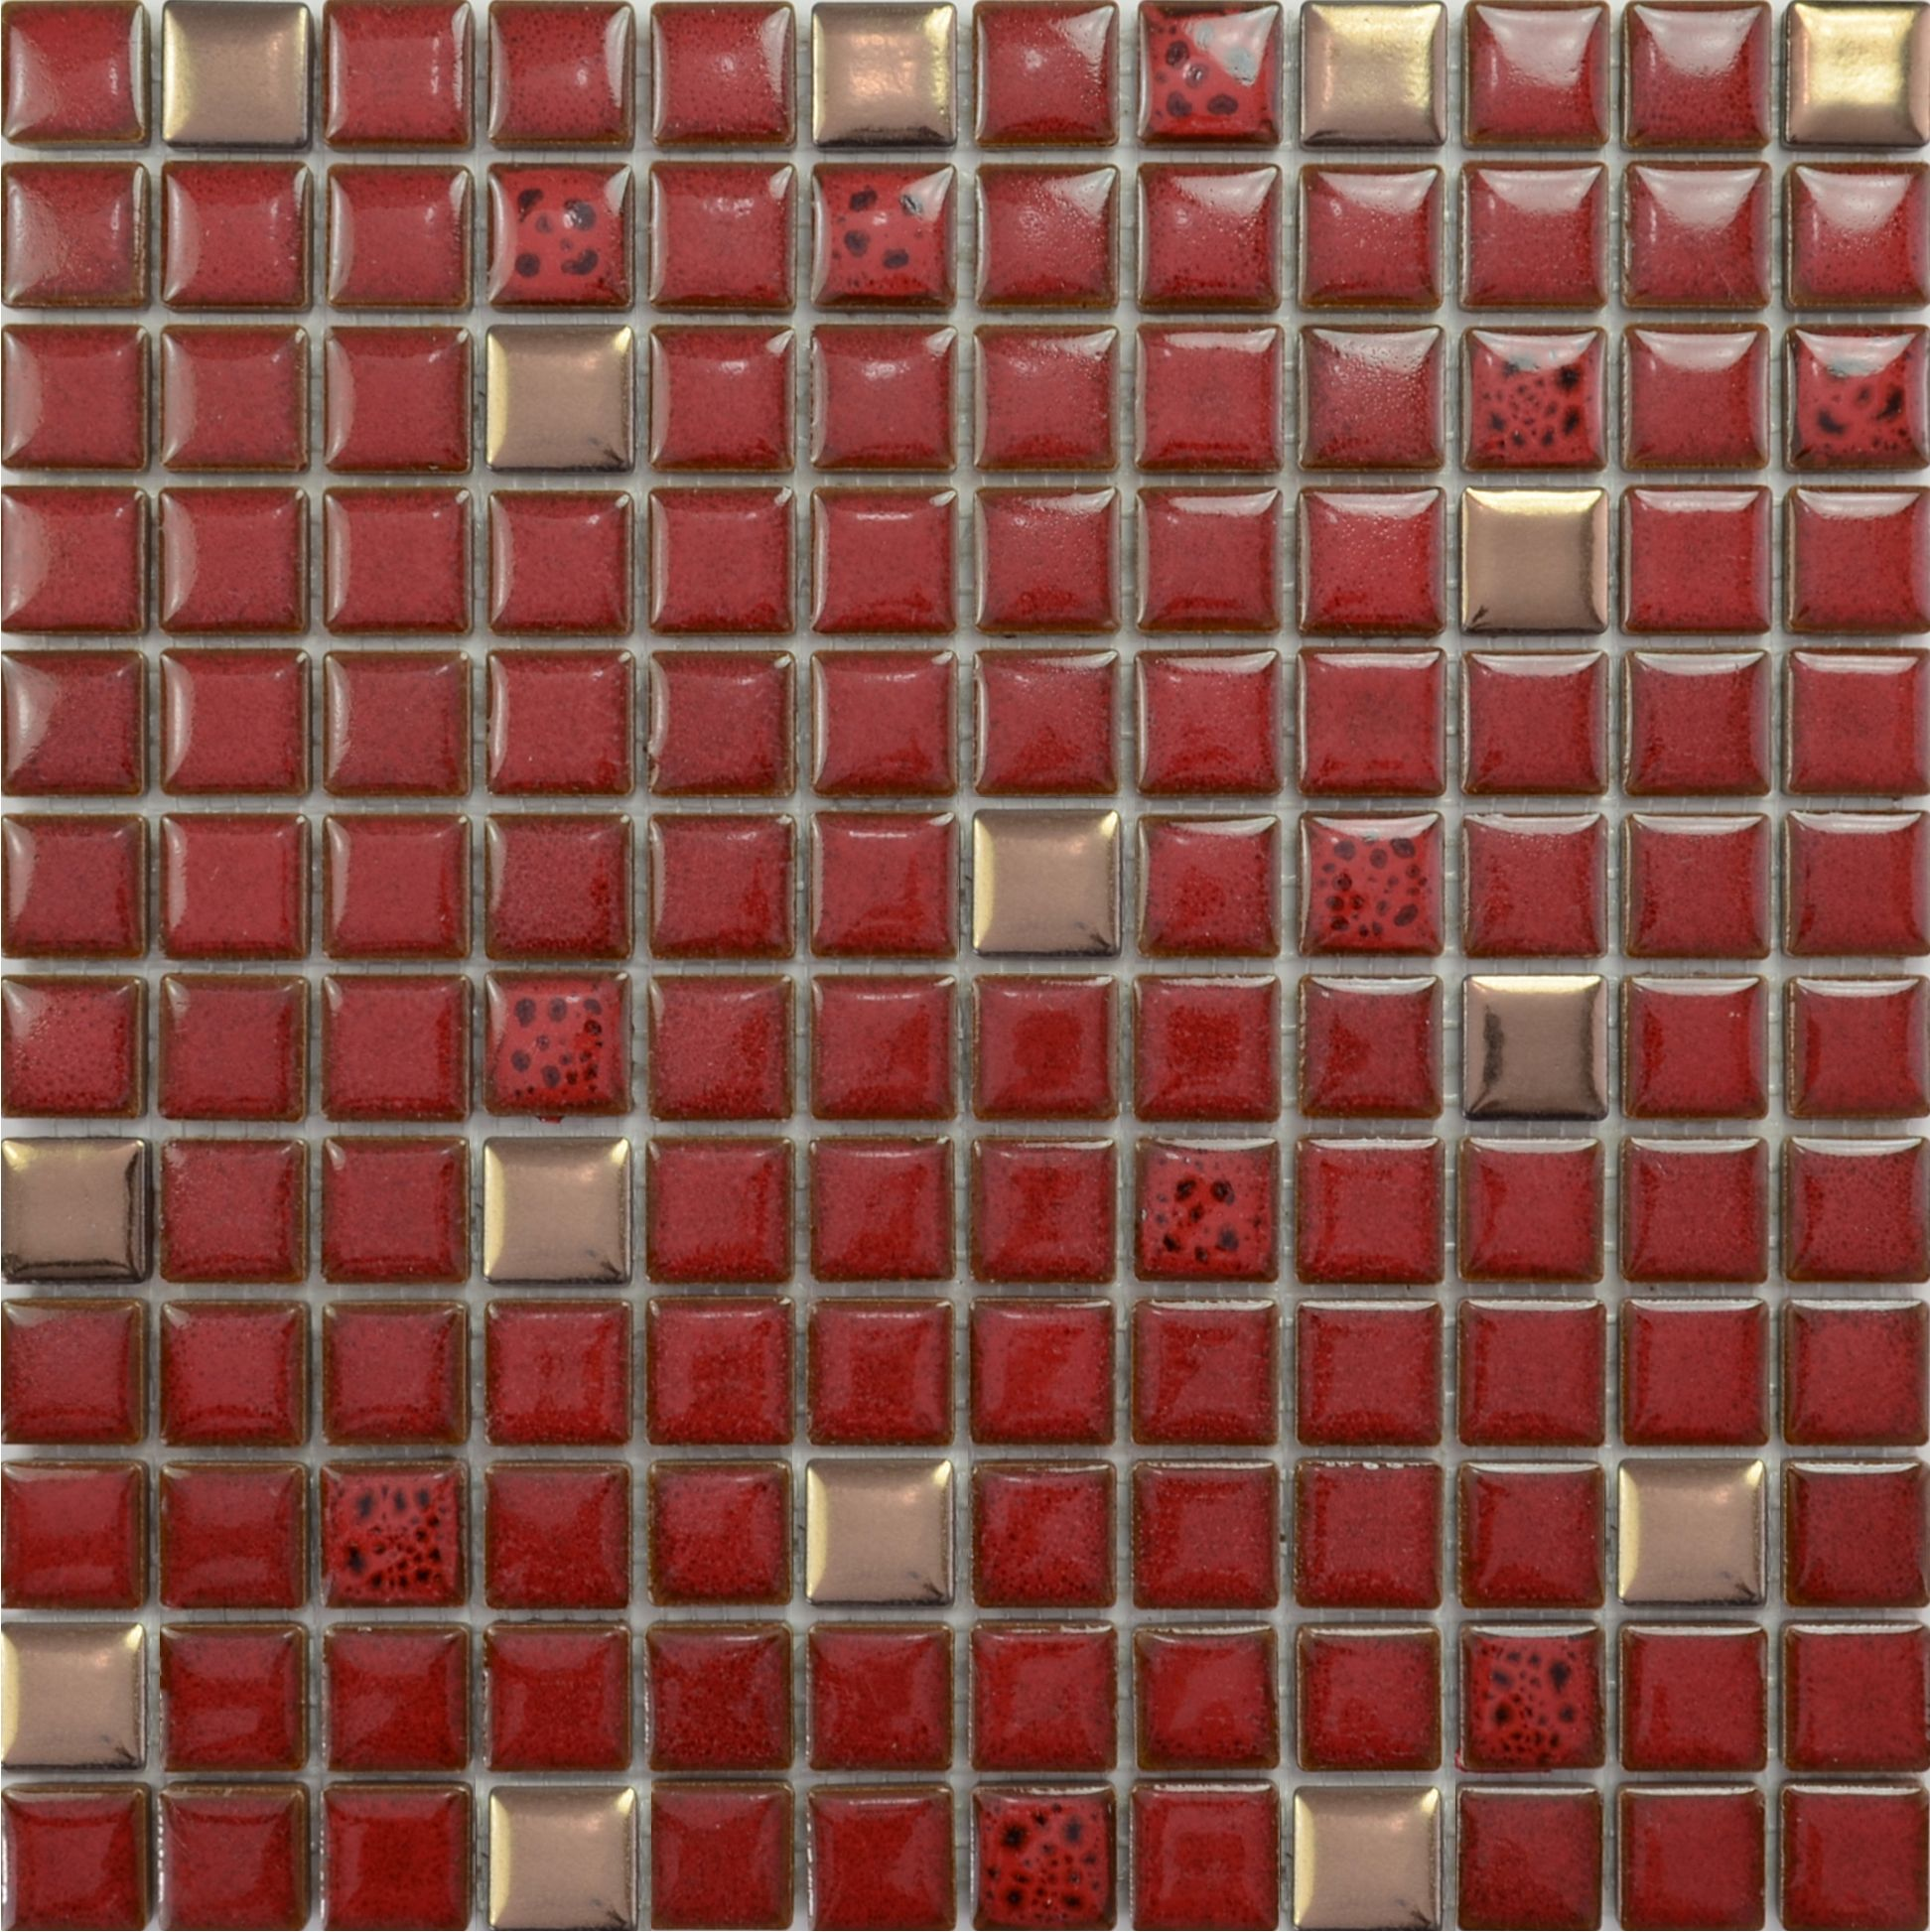 Mosaic Tile Kitchen Floor Glazed Porcelain Tile Sheets Bathroom Porcelain Ceramic Mosaic Red